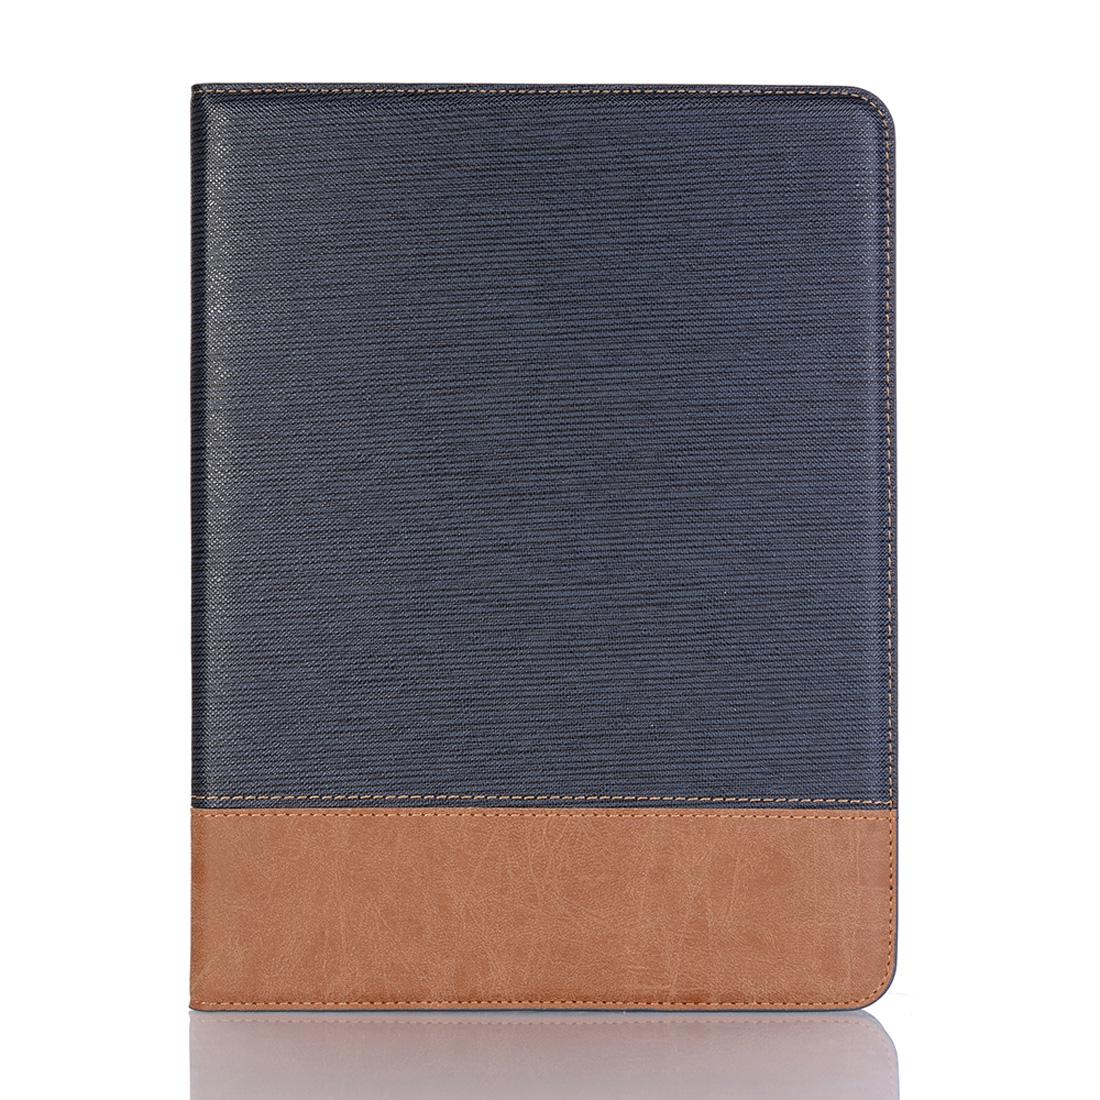 Cross Texture Leather iPad Pro 11 Case (2018) Slim Profile (Dark Blue)